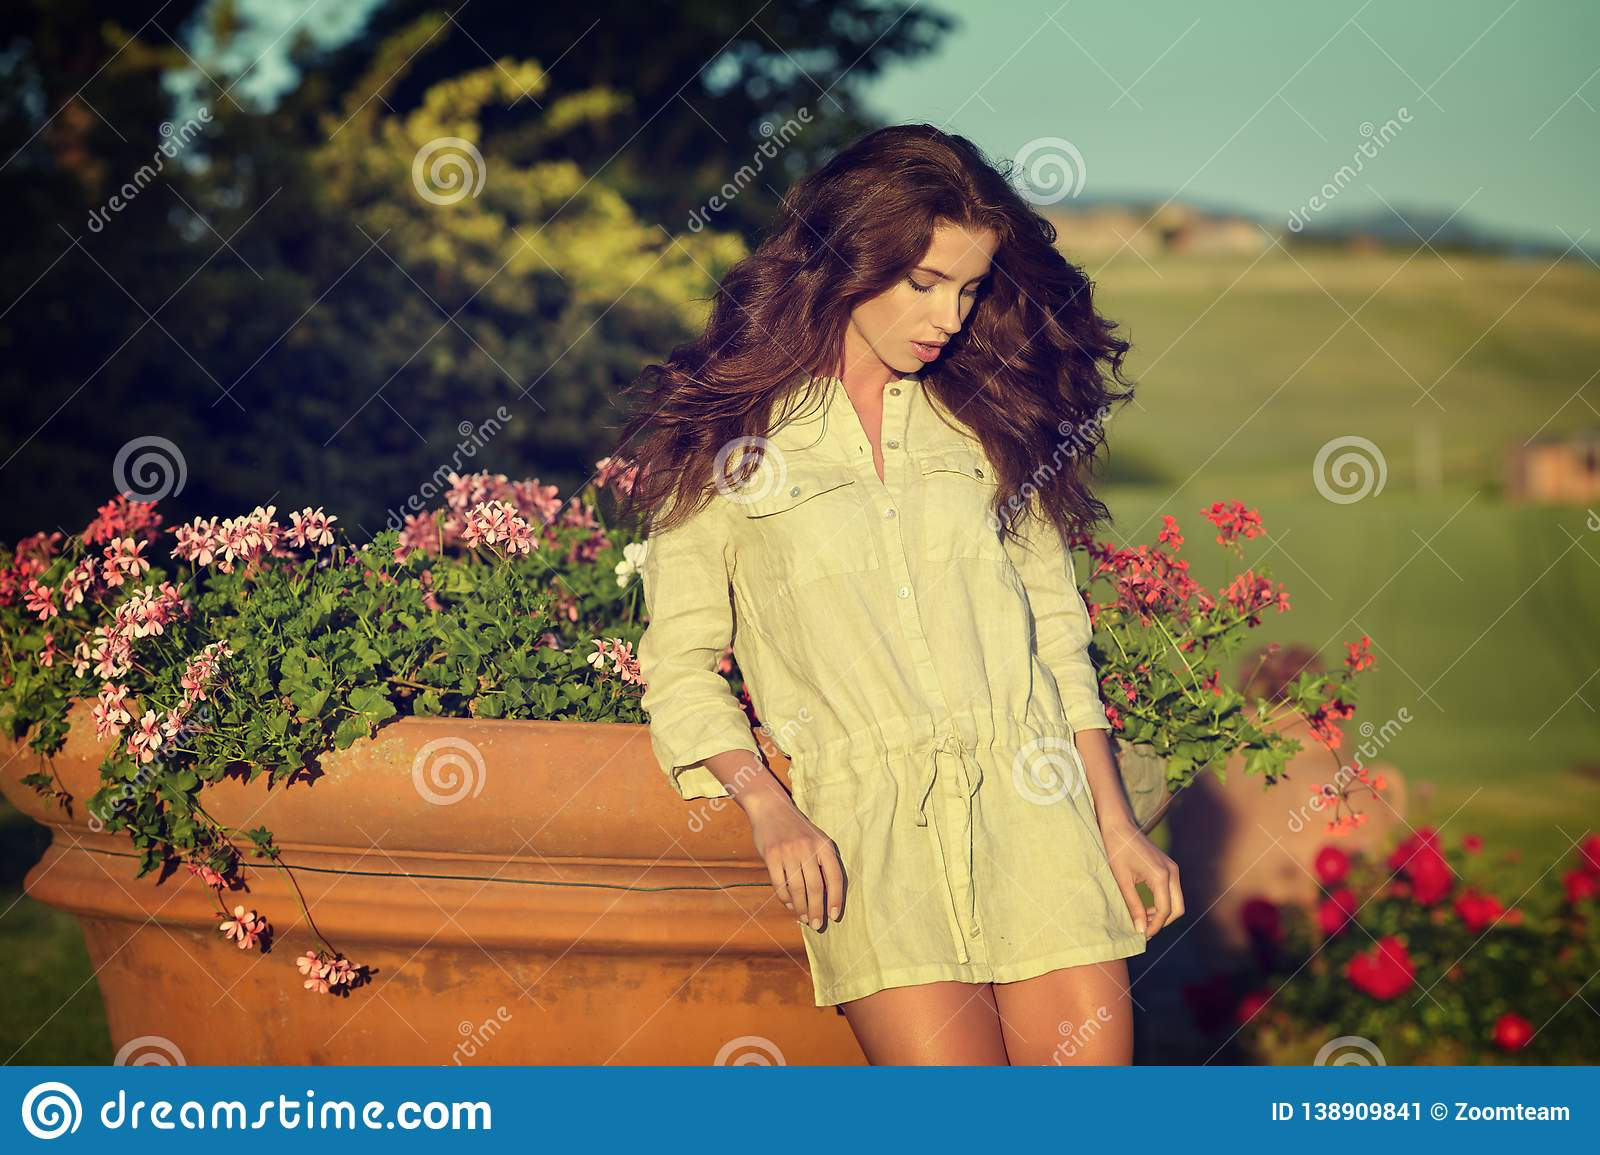 Woman in Tuscany garden